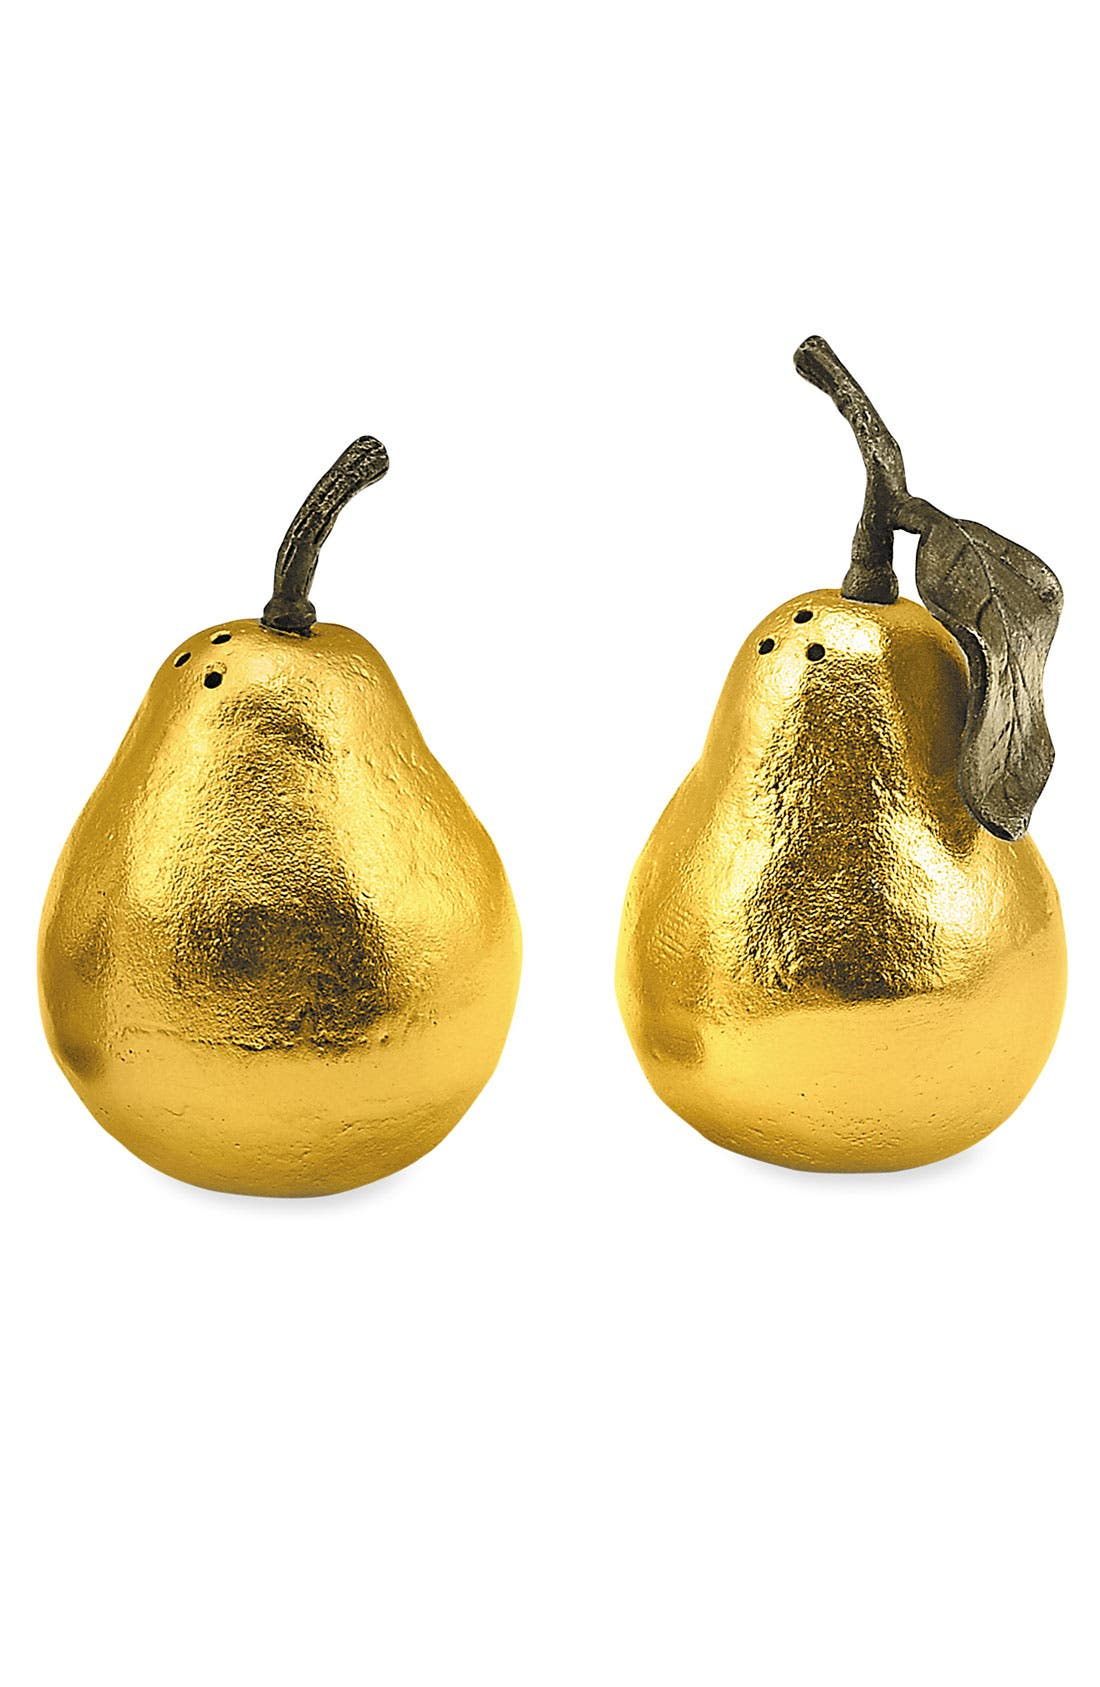 Alternate Image 1 Selected - Michael Aram 'Pear' Salt & Pepper Shakers